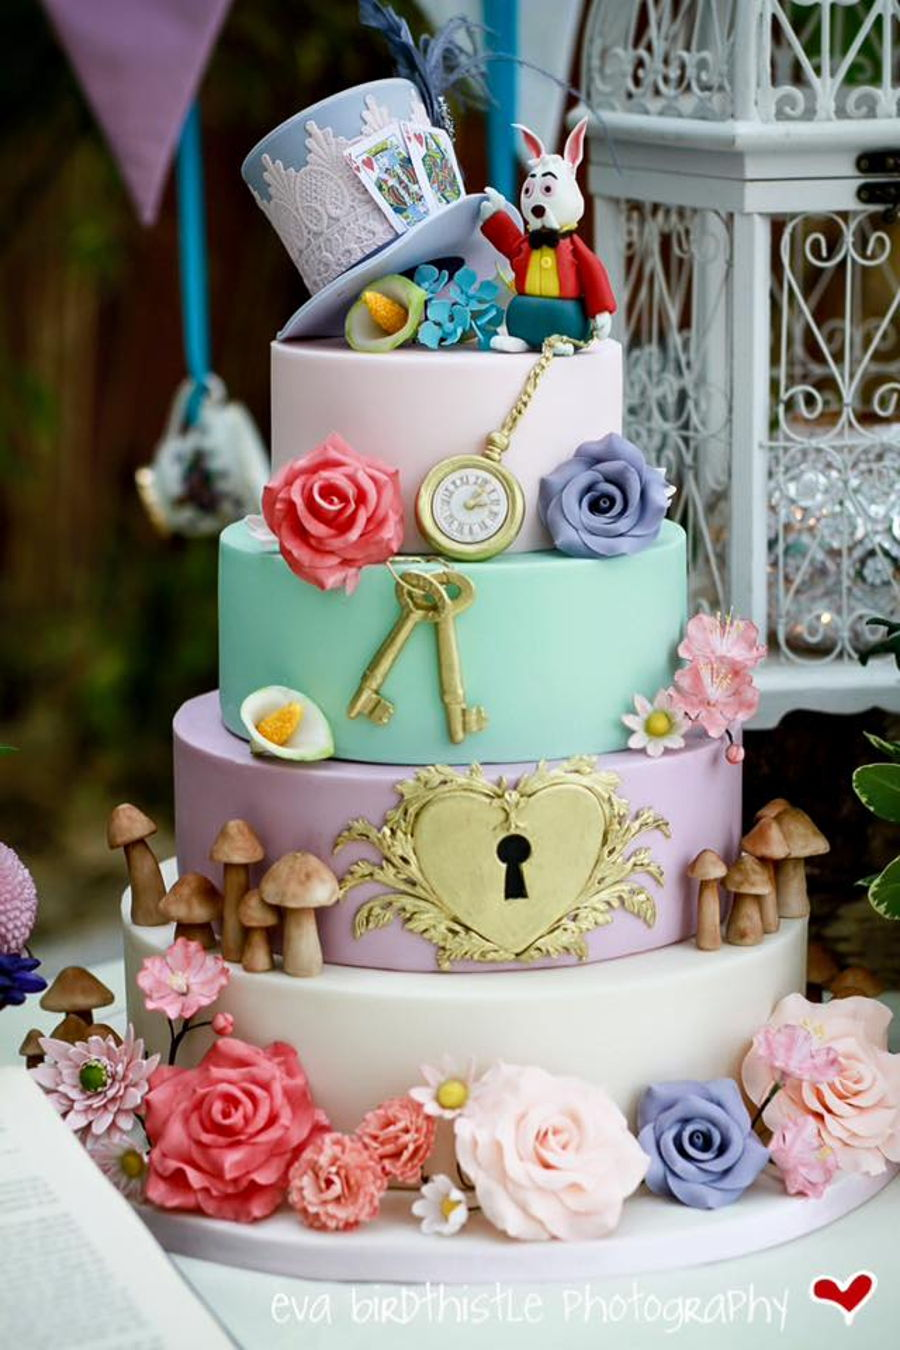 Whimsical Mad Hatters Tea Party Wedding Cake - CakeCentral.com